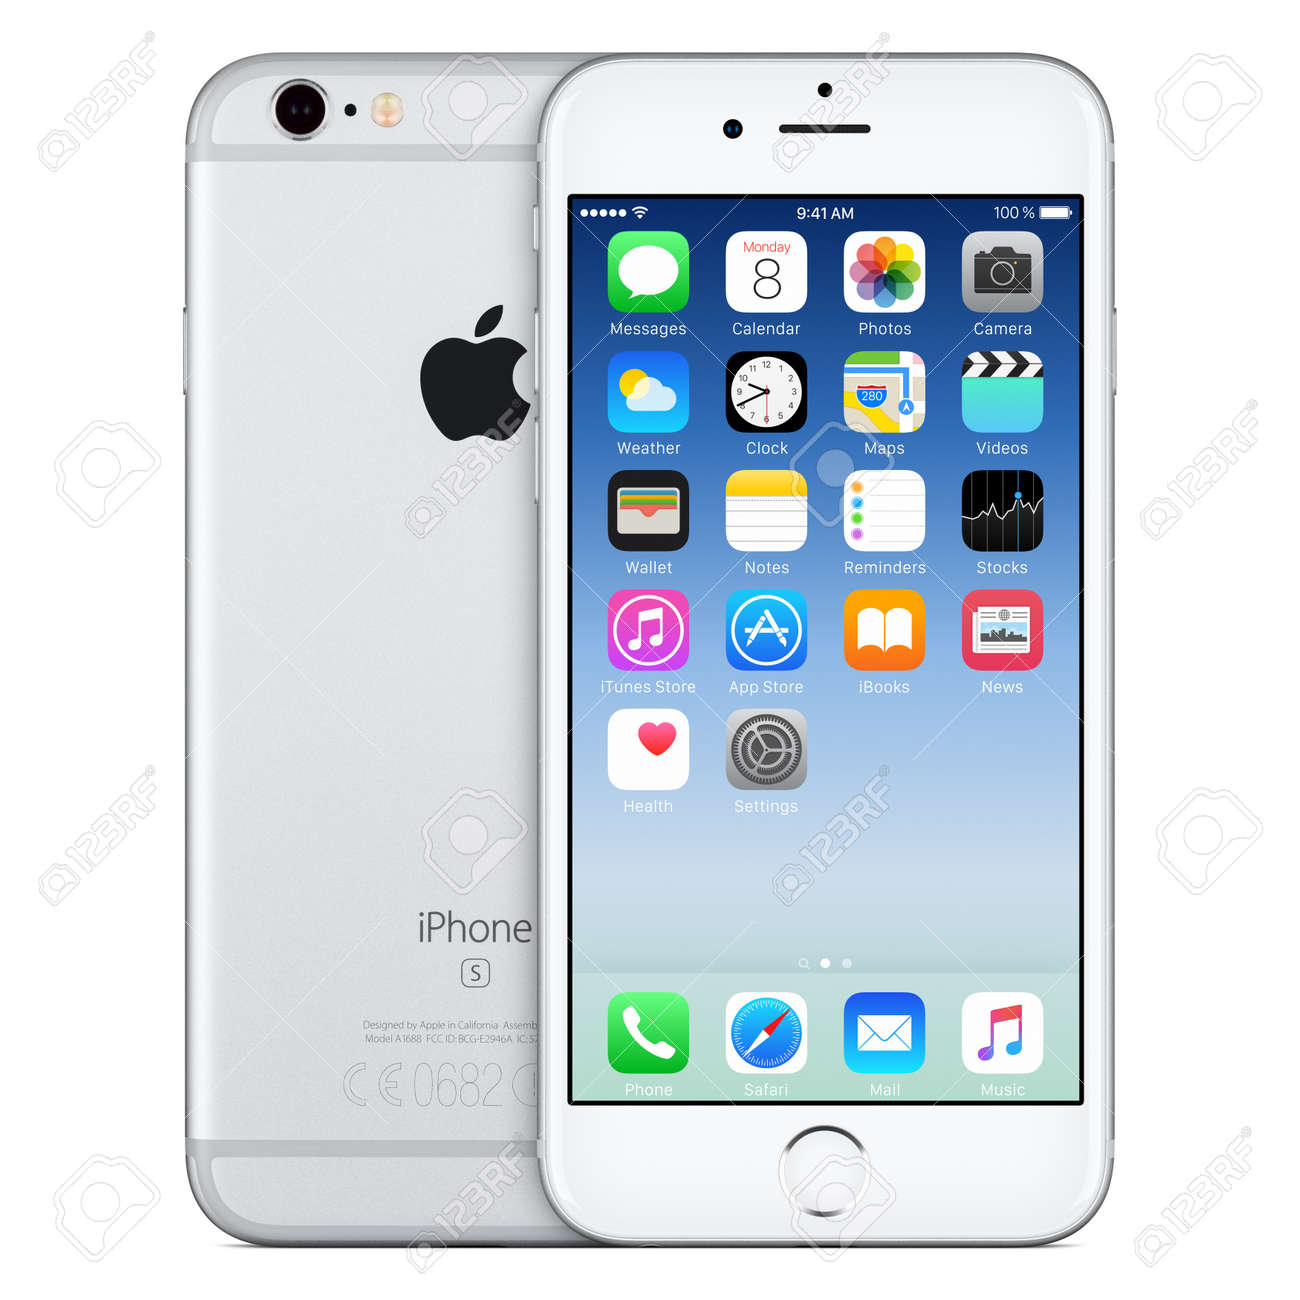 Varna, Bulgaria - October 24, 2015: Front view of Silver Apple iPhone 6S with iOS 9 mobile operating system and back side with Apple Inc logo. Isolated on white. - 51147178